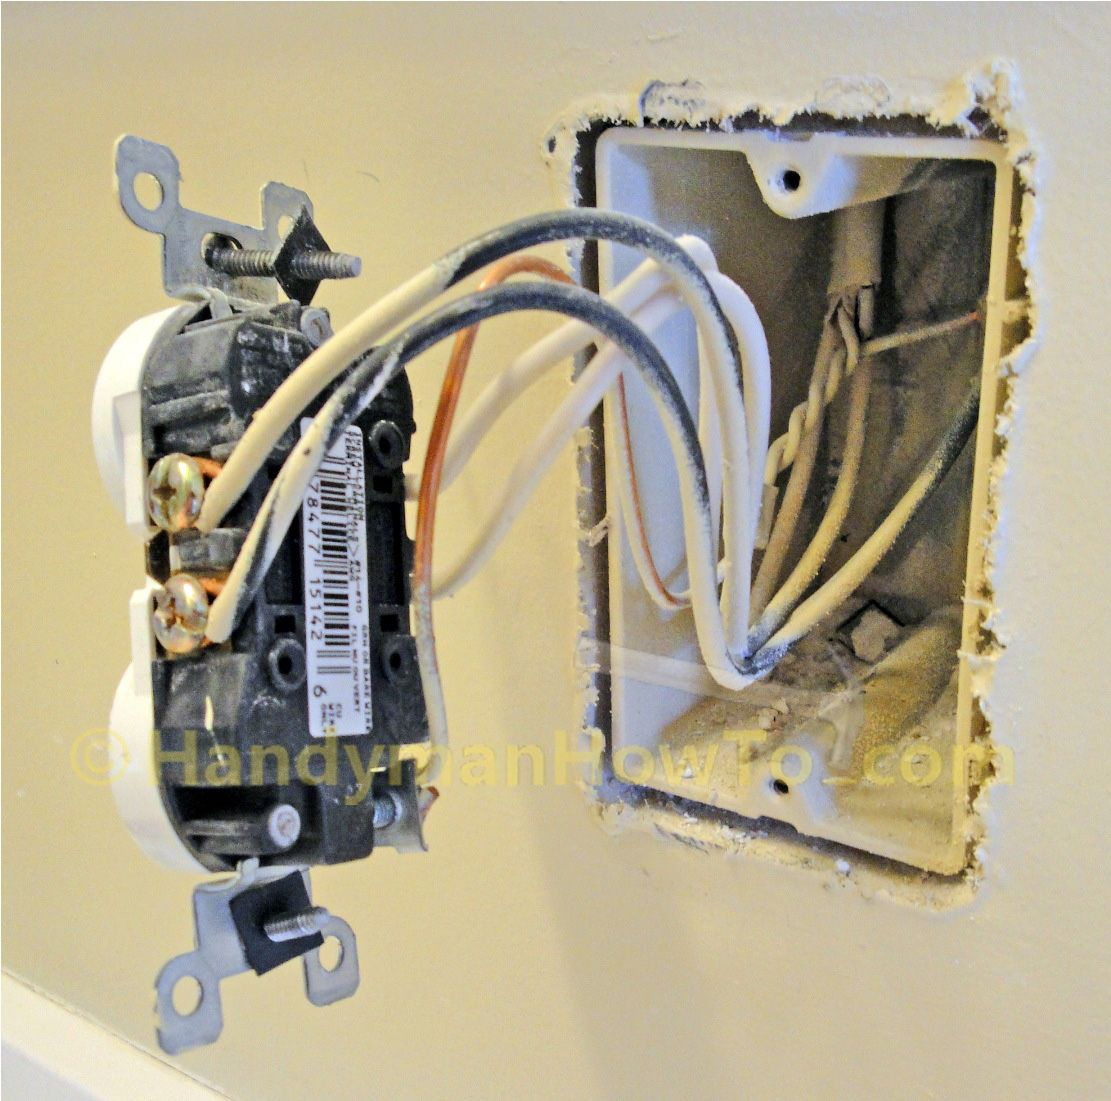 How To Replace A Worn Out Electrical Outlet Photo Tutorial With Wiring House Parallel And Series